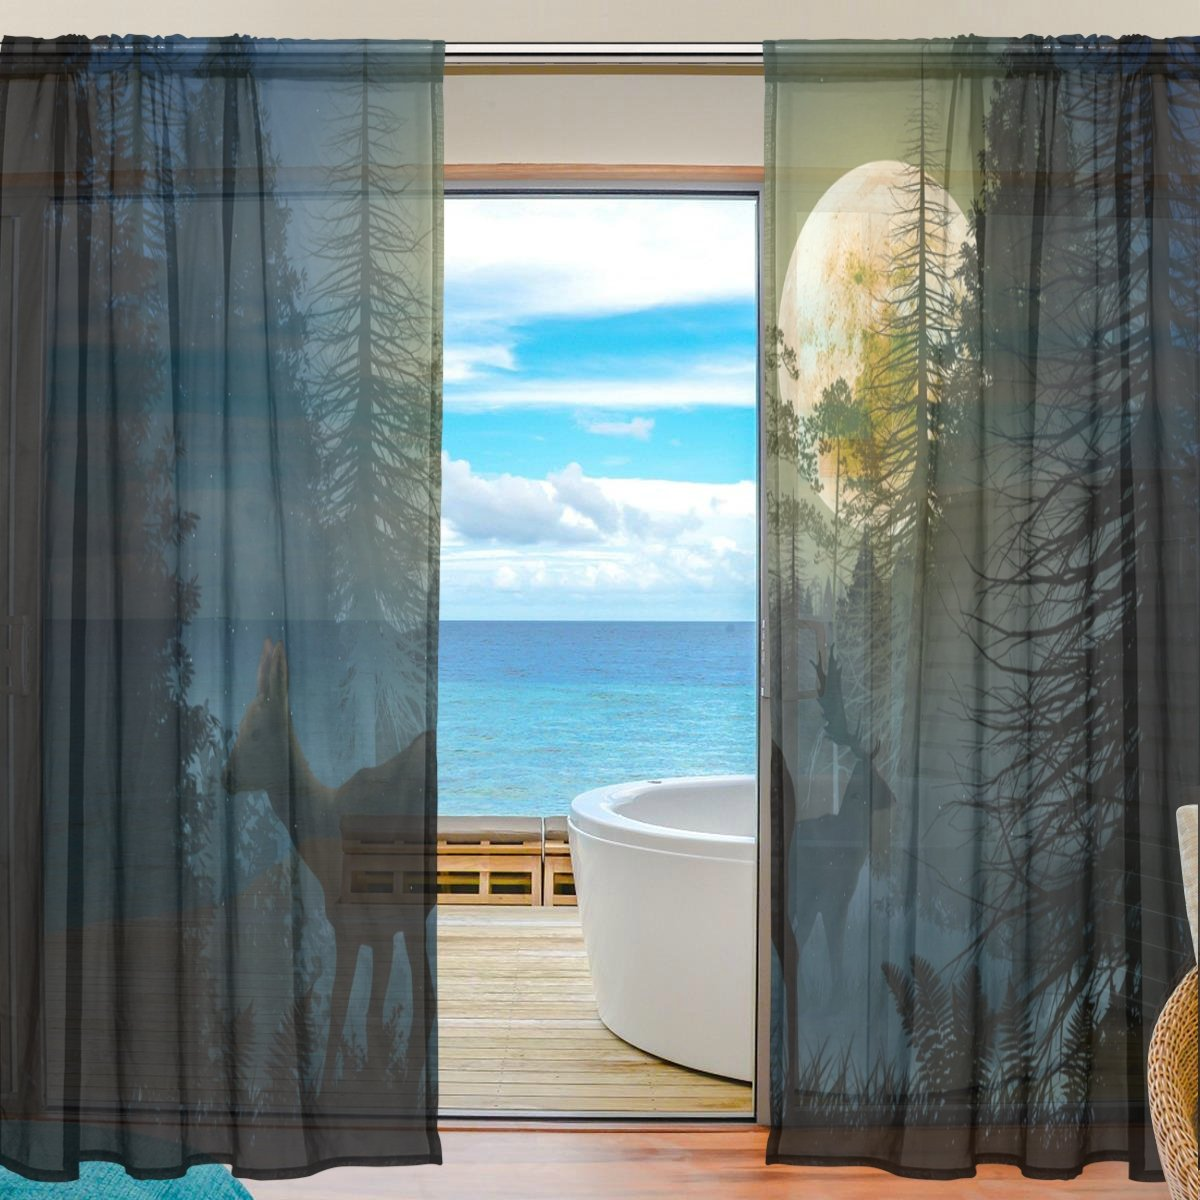 SEULIFE Window Sheer Curtain, Animal Deer Giraffe Forest Tree Moon Voile Curtain Drapes for Door Kitchen Living Room Bedroom 55x78 inches 2 Panels by SEULIFE